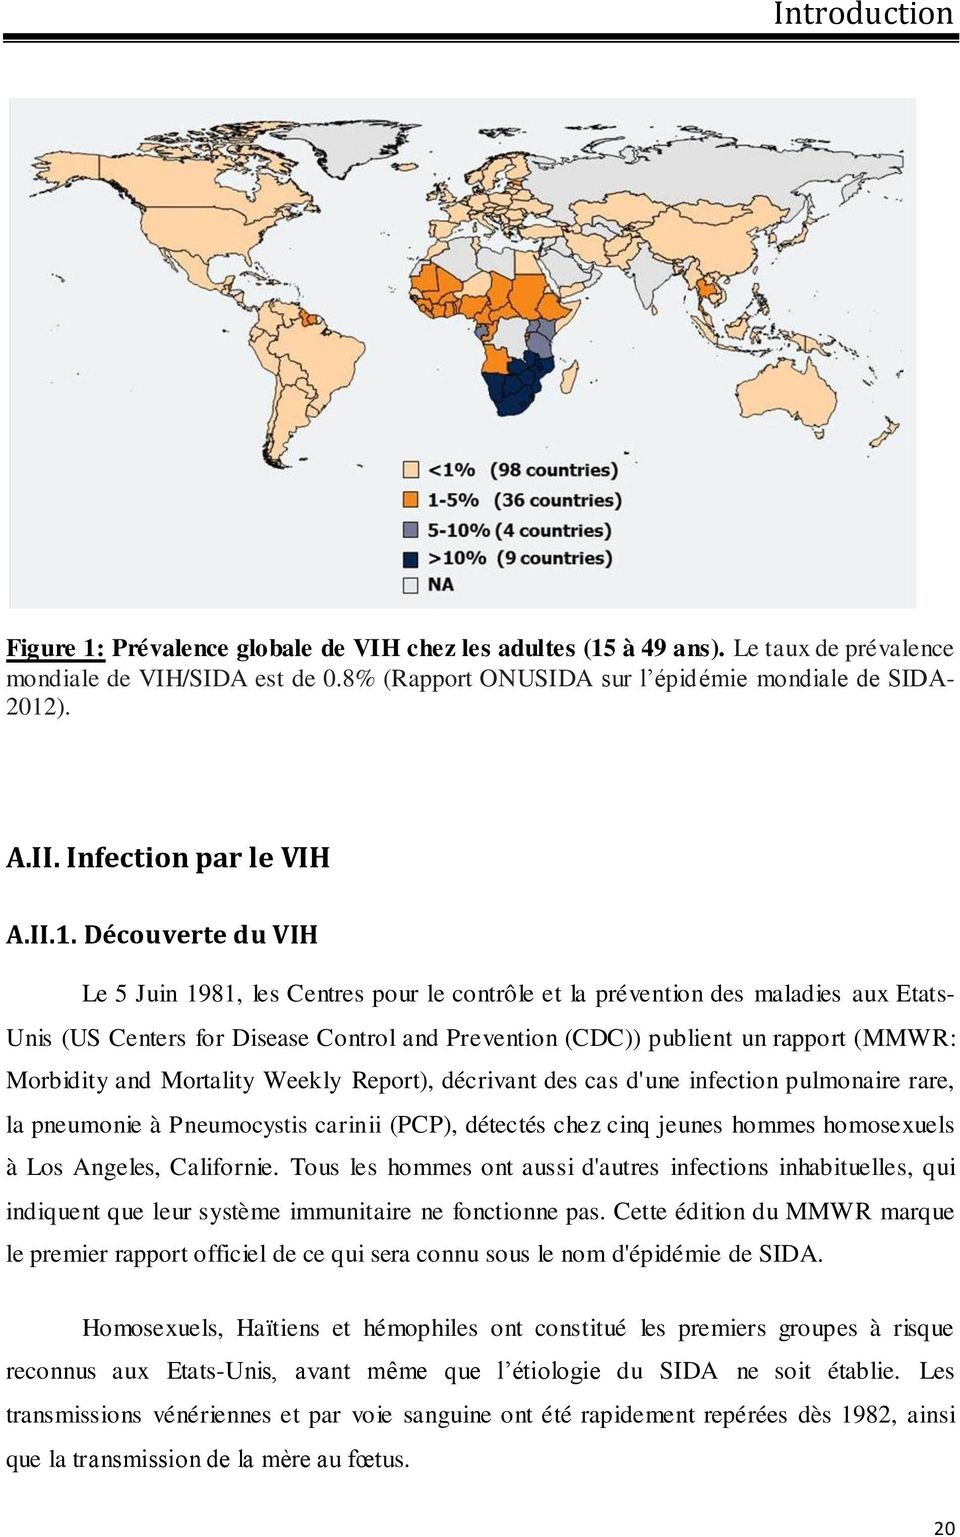 Découverte du VIH Le 5 Juin 1981, les Centres pour le contrôle et la prévention des maladies aux Etats- Unis (US Centers for Disease Control and Prevention (CDC)) publient un rapport (MMWR: Morbidity